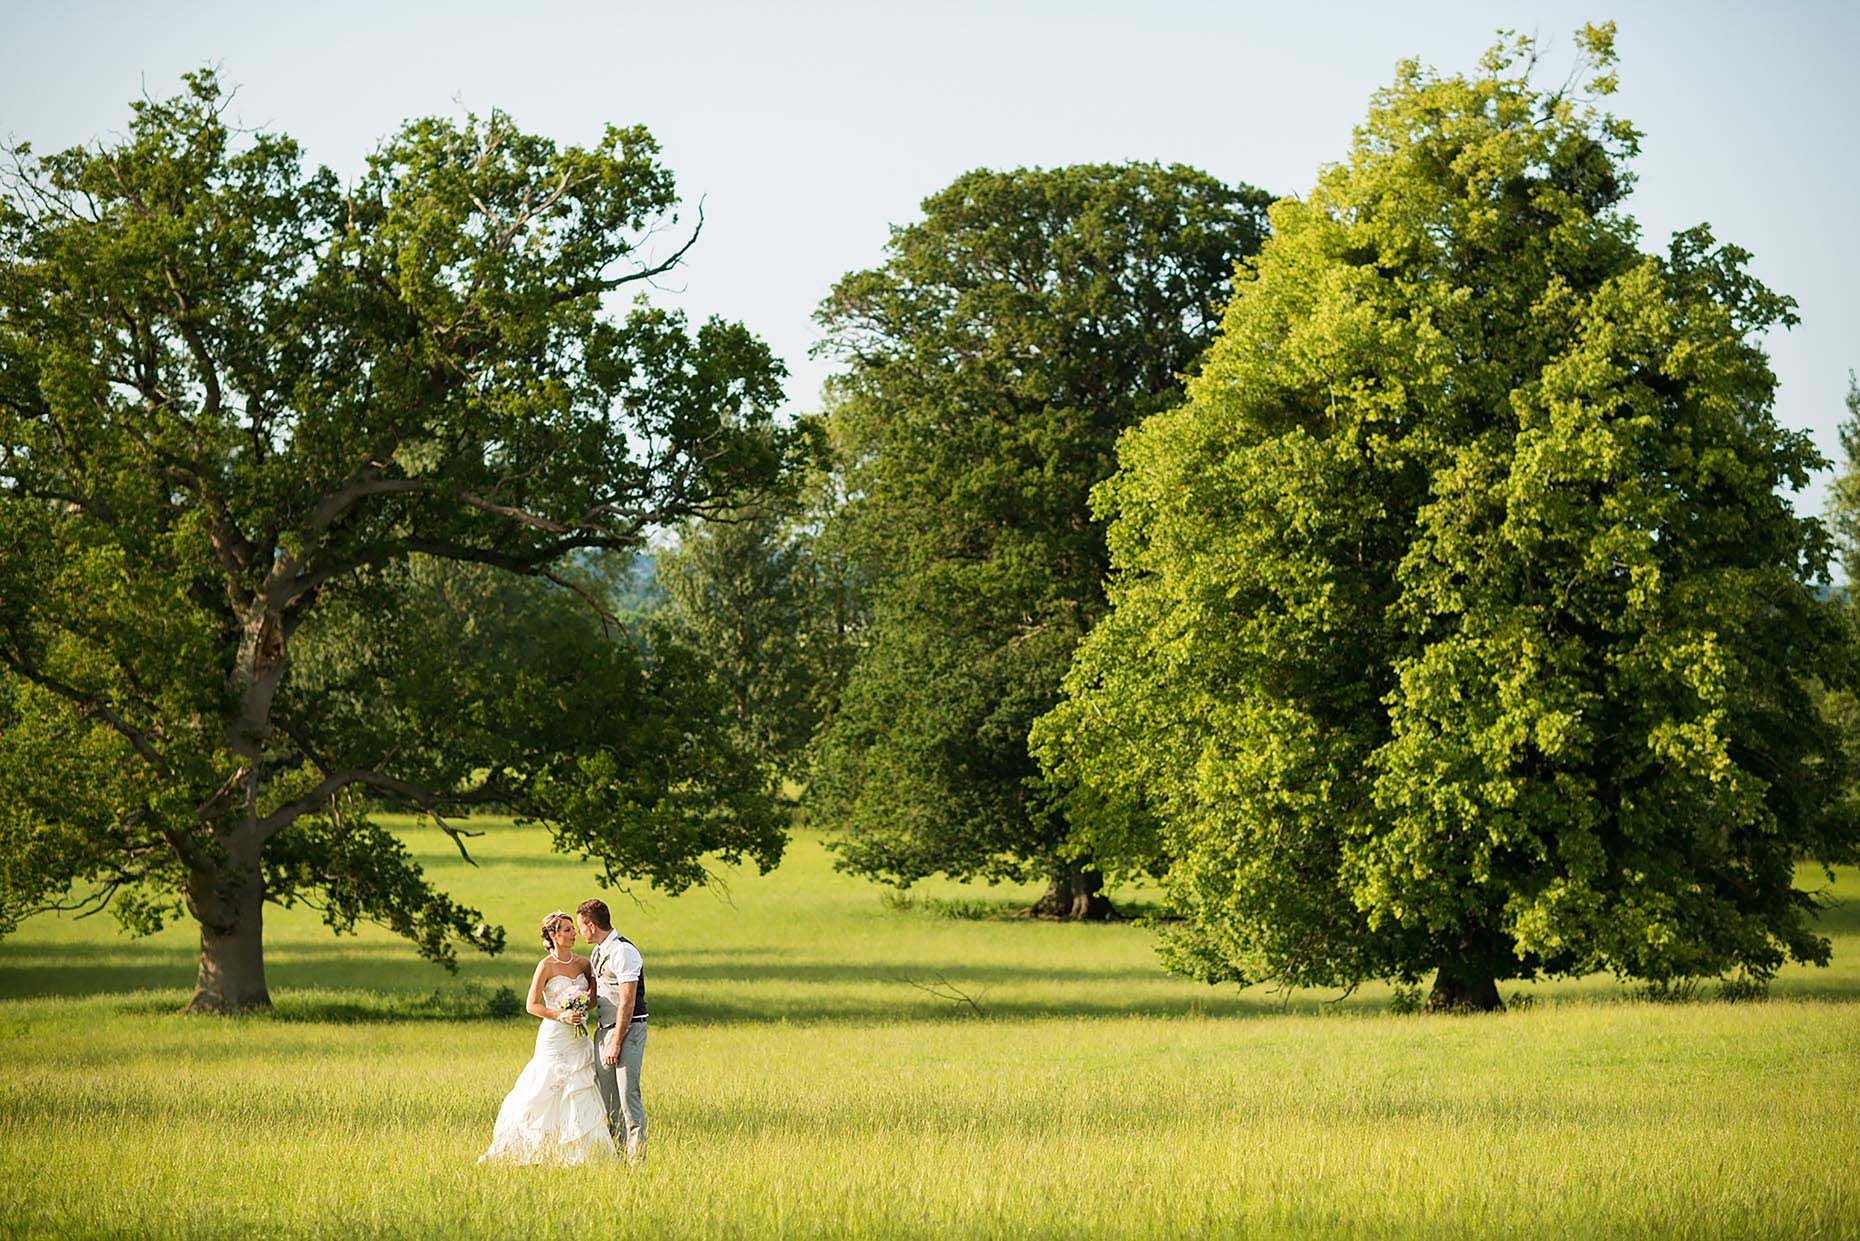 suzie-field-landscape-wedding-portrait-outdoors-rural-34